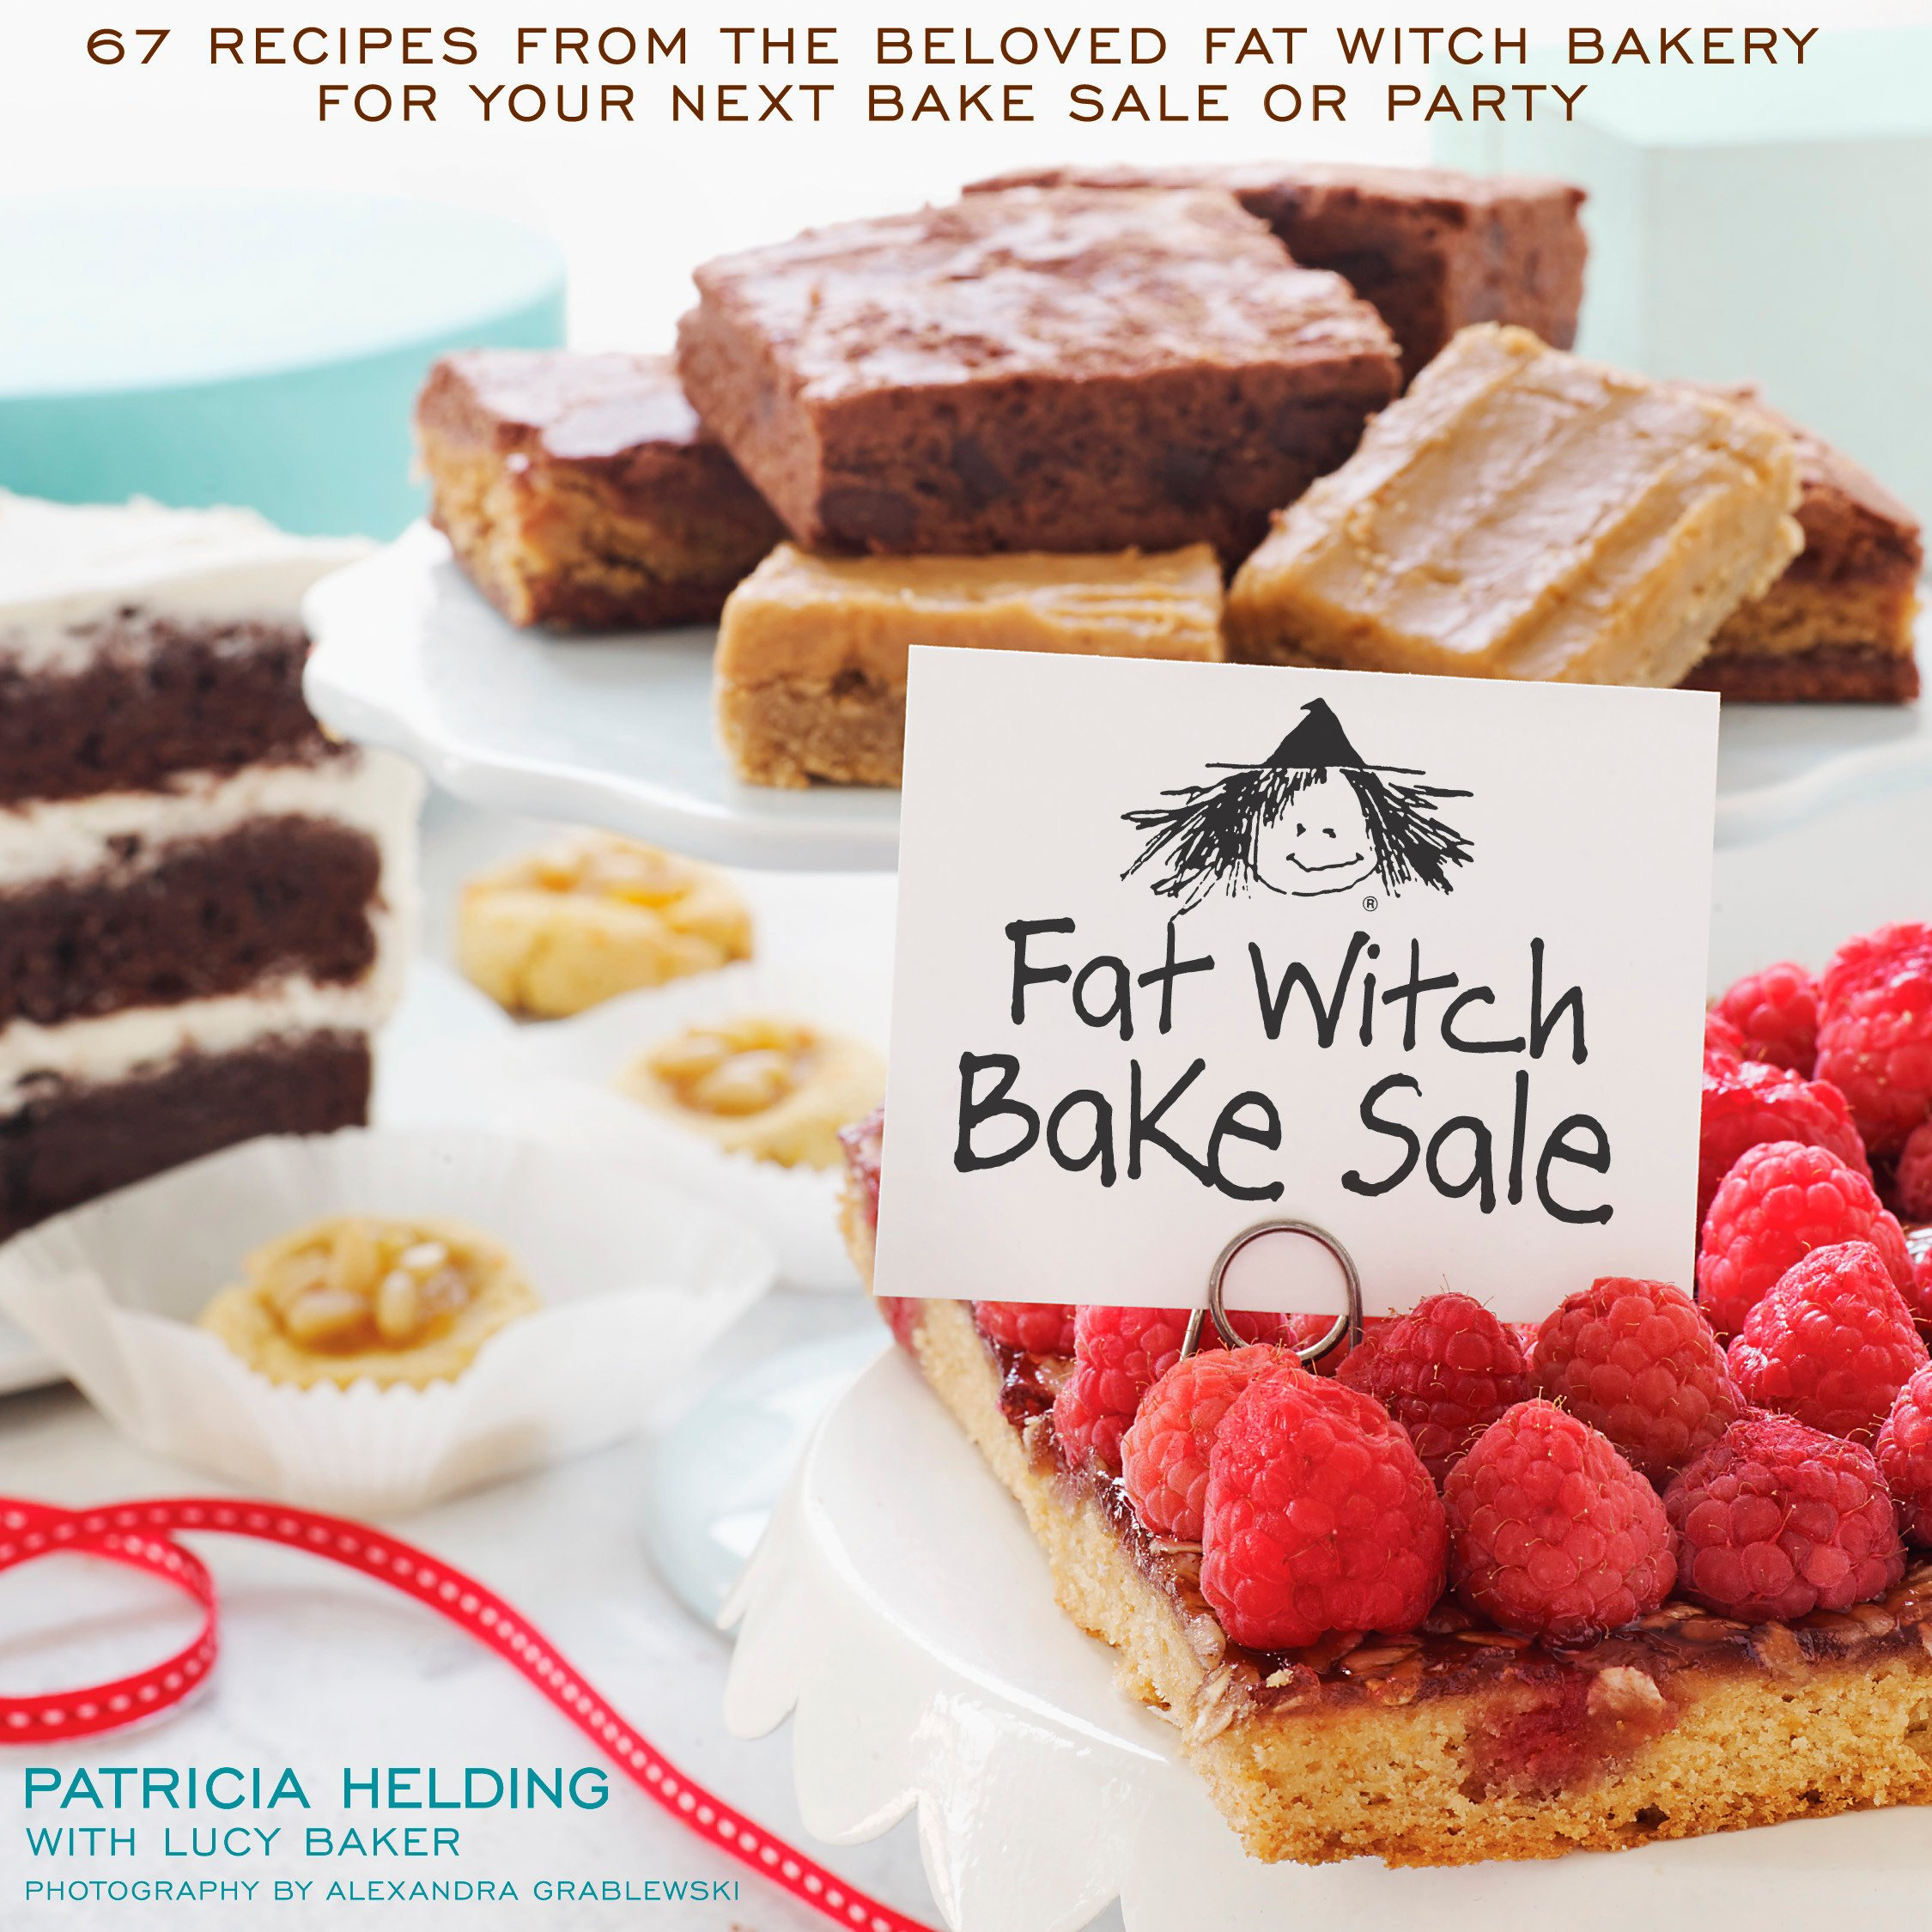 Fat Witch Bake Sale: 67 Recipes from the Beloved Fat Witch Bakery for Your Next Bake Sale or Party: A Baking Book (Fat Witch Baking Cookbooks) by Rodale Books